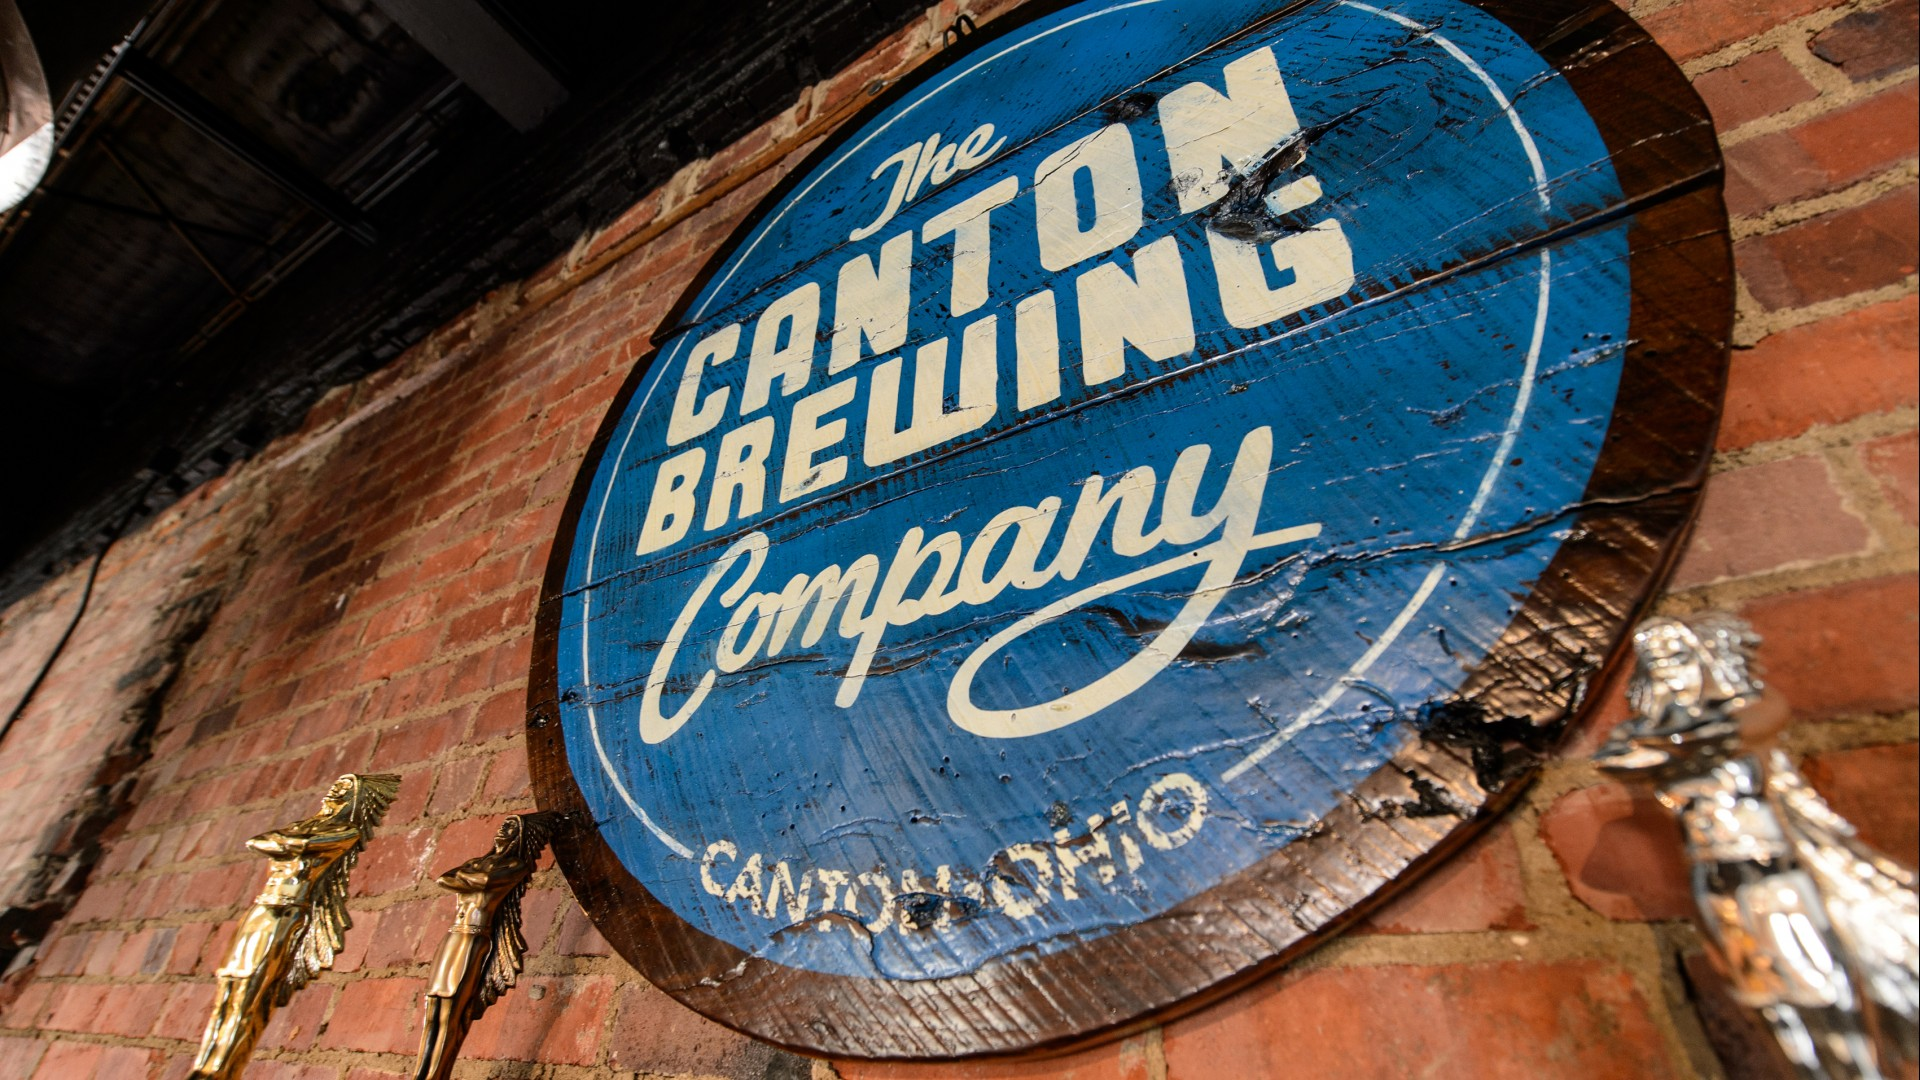 Experience the local flavors and nightlife in the Canton, Ohio area.